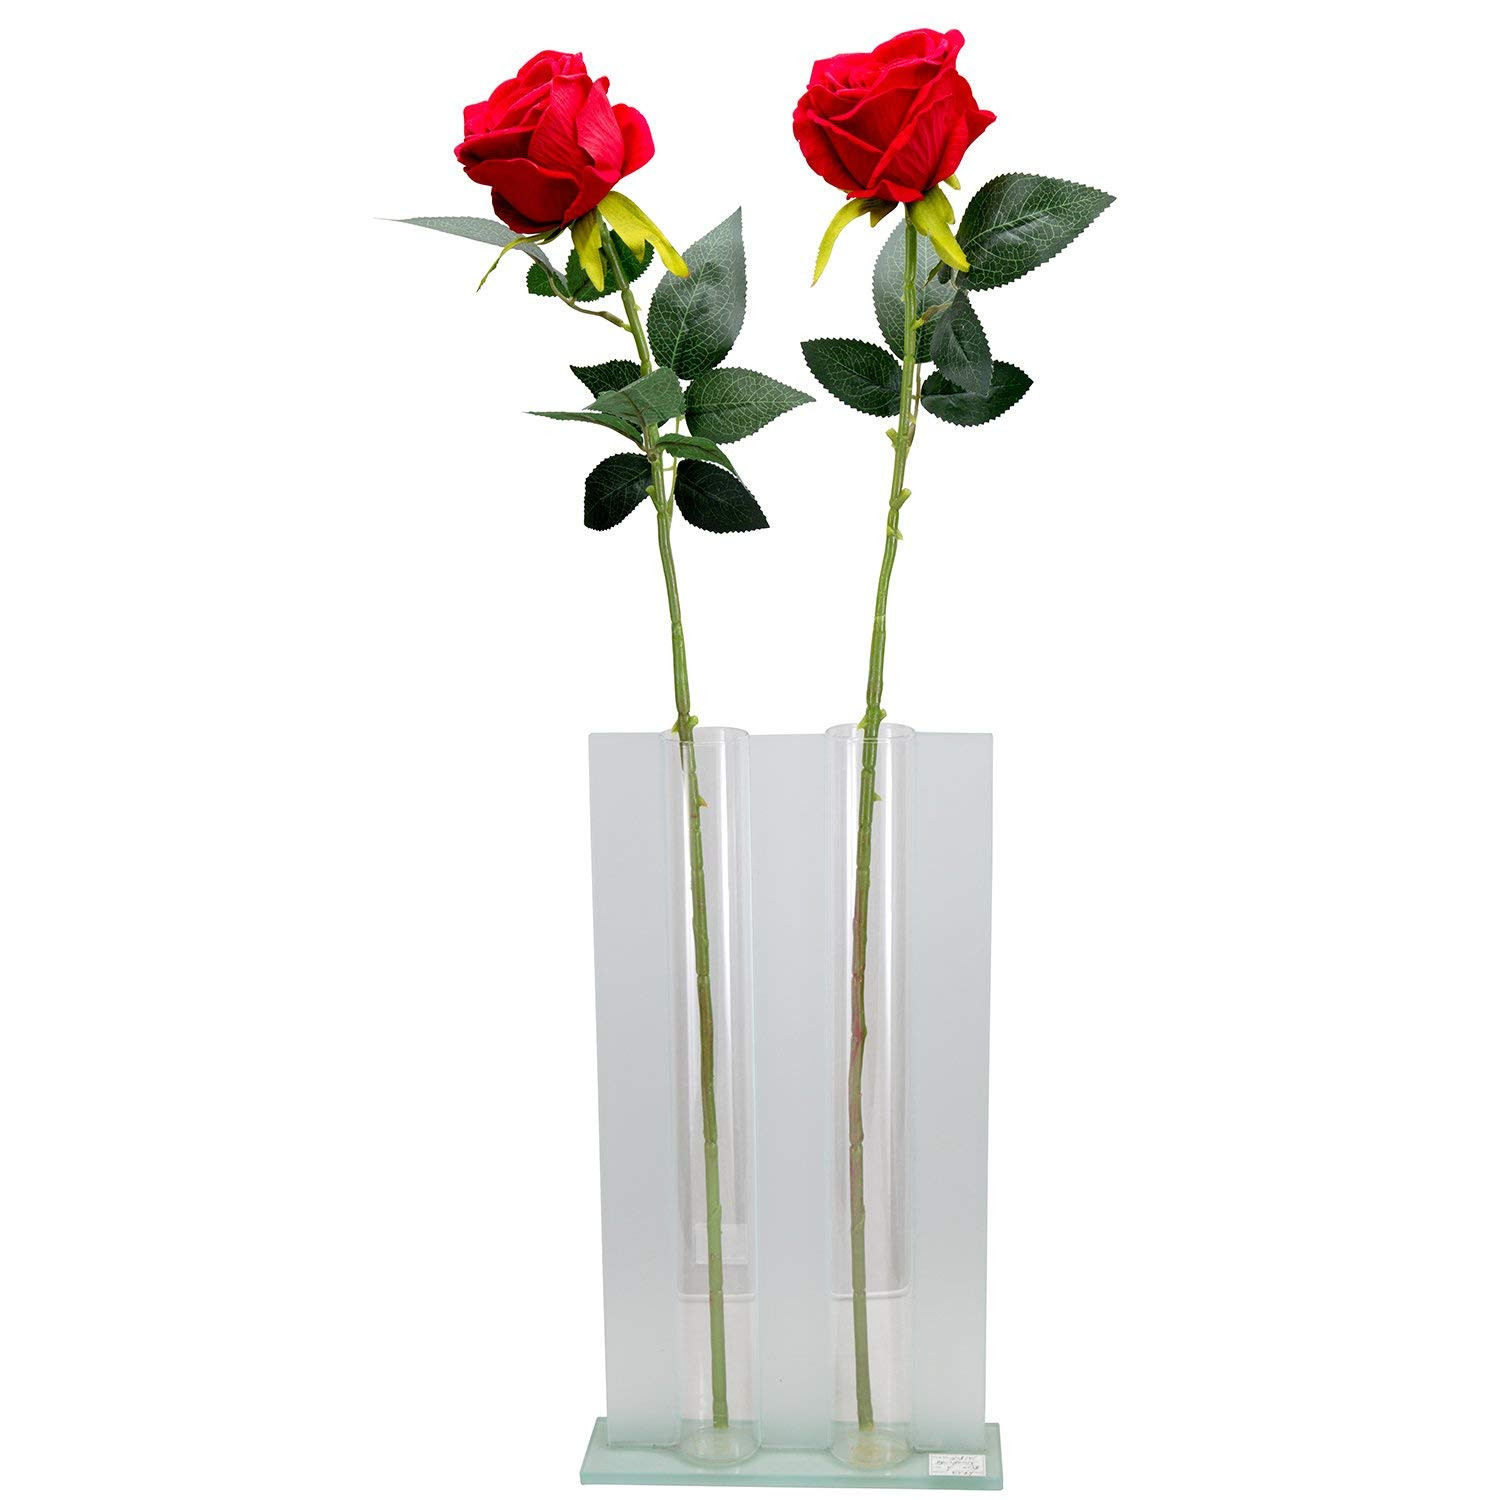 "Amazon Artificial Silk Roses Red Velvet 30"" Long Stemmed 1 Dozen Fake Flowers for Bouquets Weddings Valentines By Royal Imports Home & Kitchen"